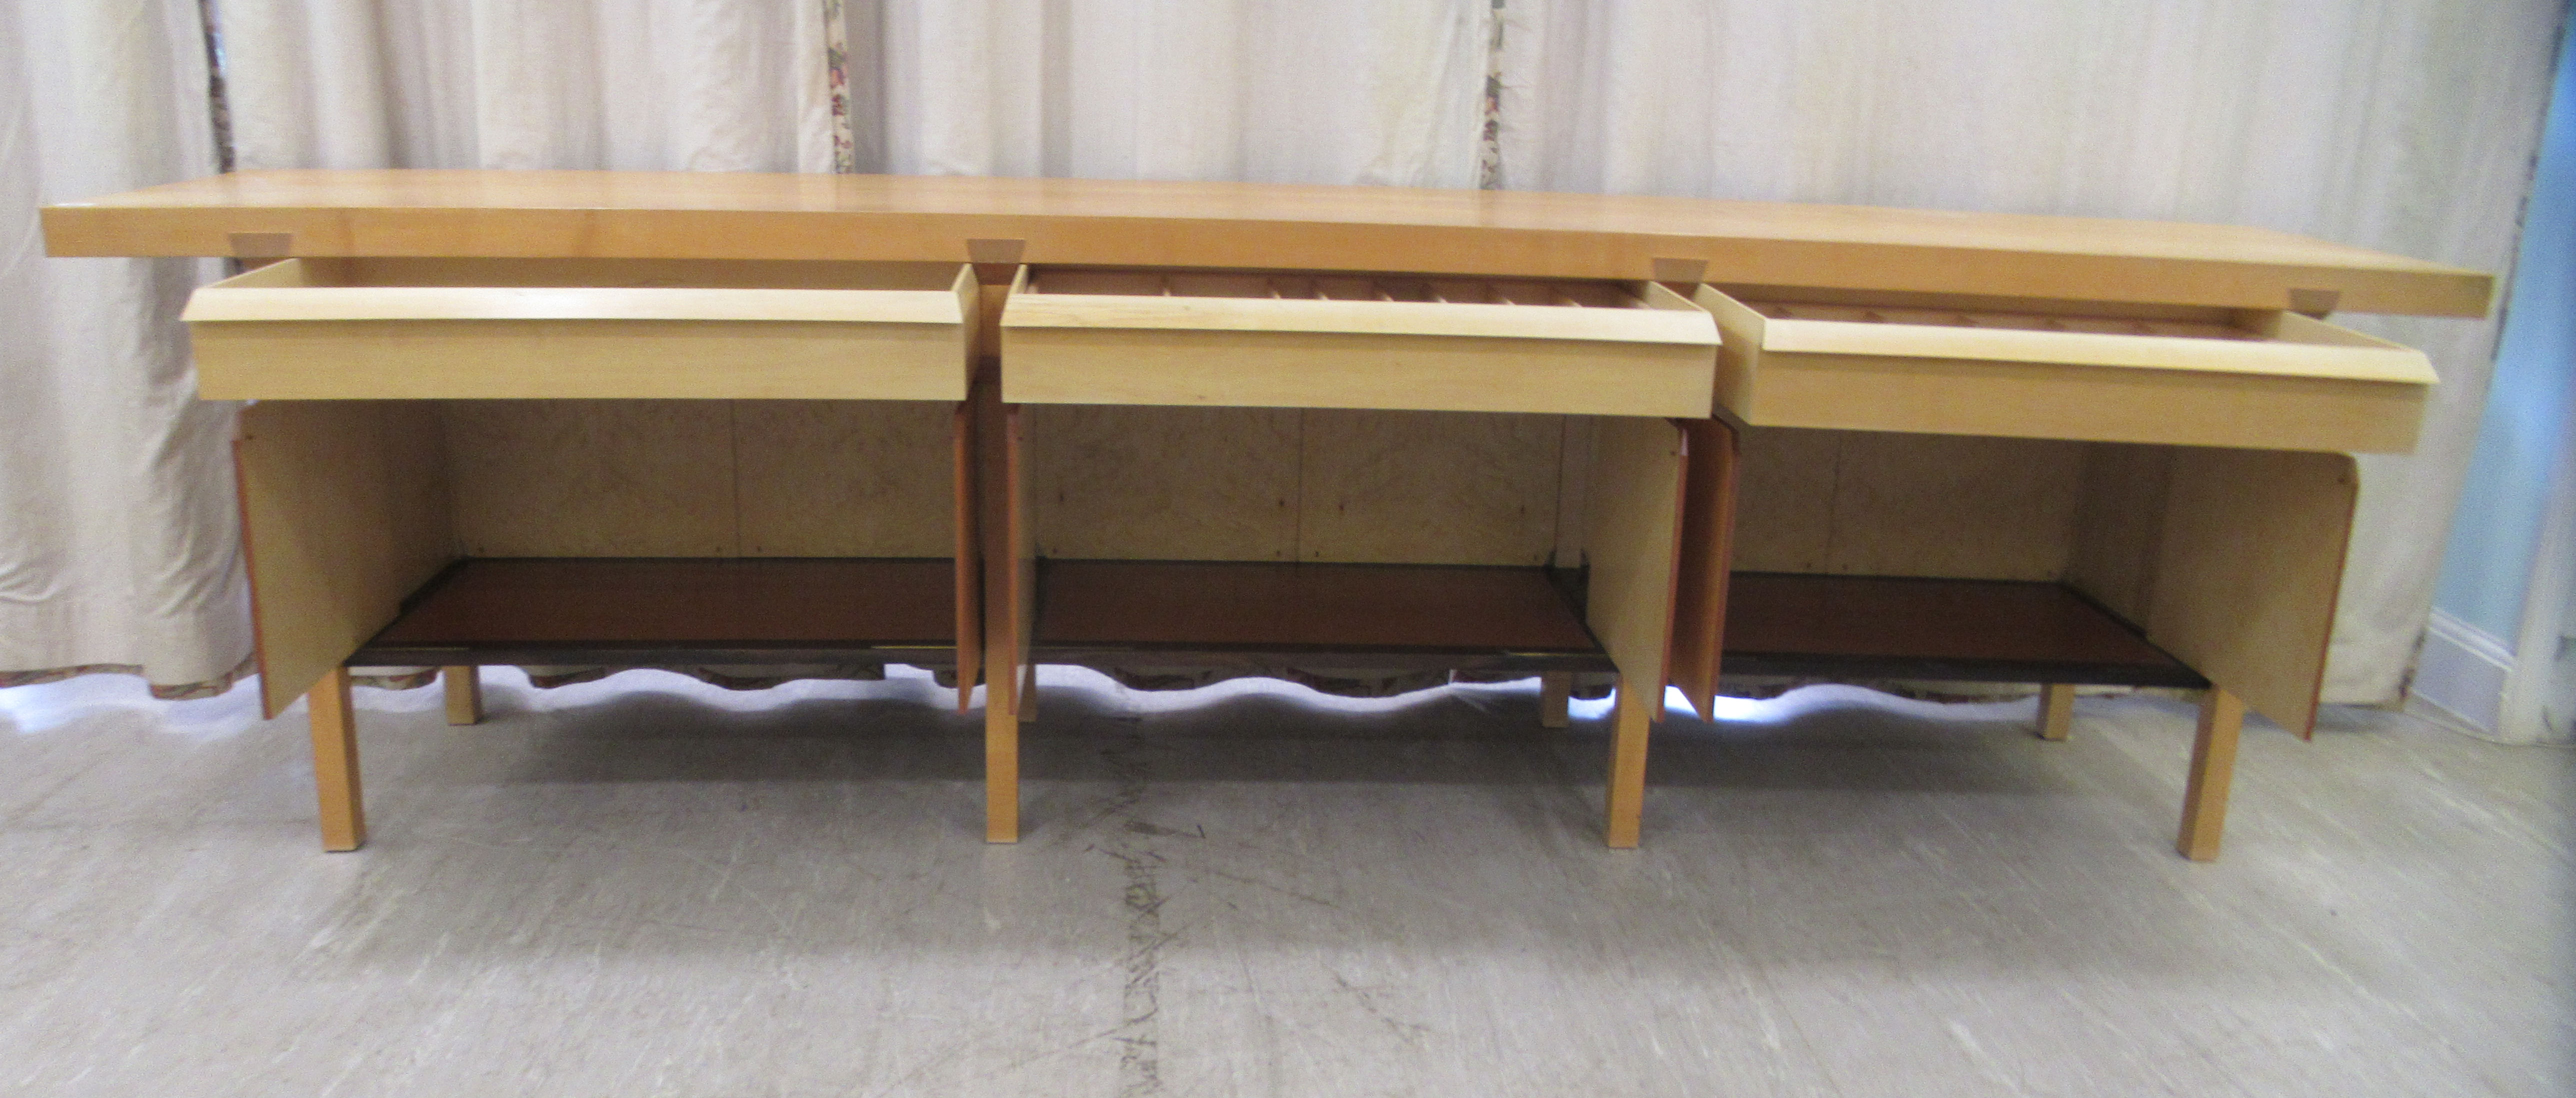 A 1960sJohn Makepeace OBE sideboard, constructed in sycamore, Andaman padauk and holly, - Image 8 of 12